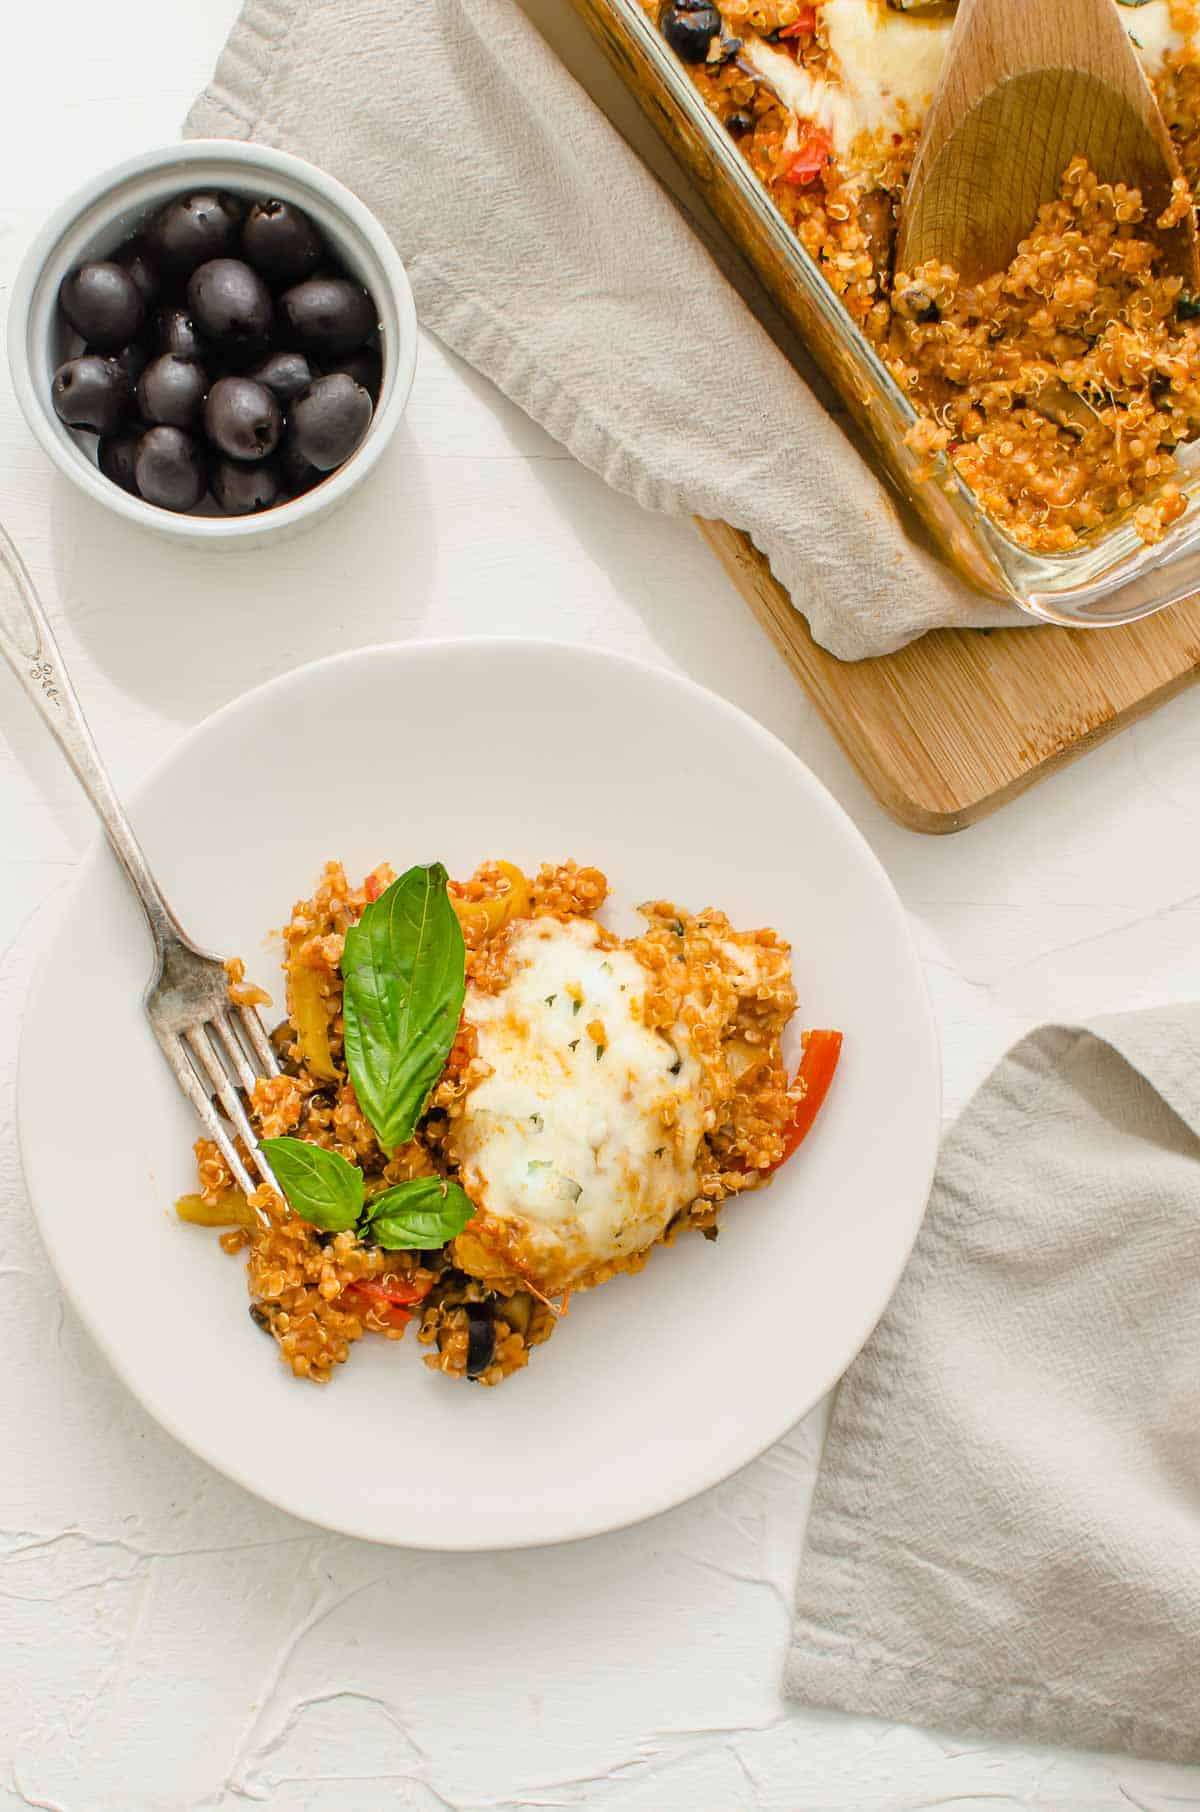 Birds eye view image of plated pizza quinoa casserole garnished with basil.